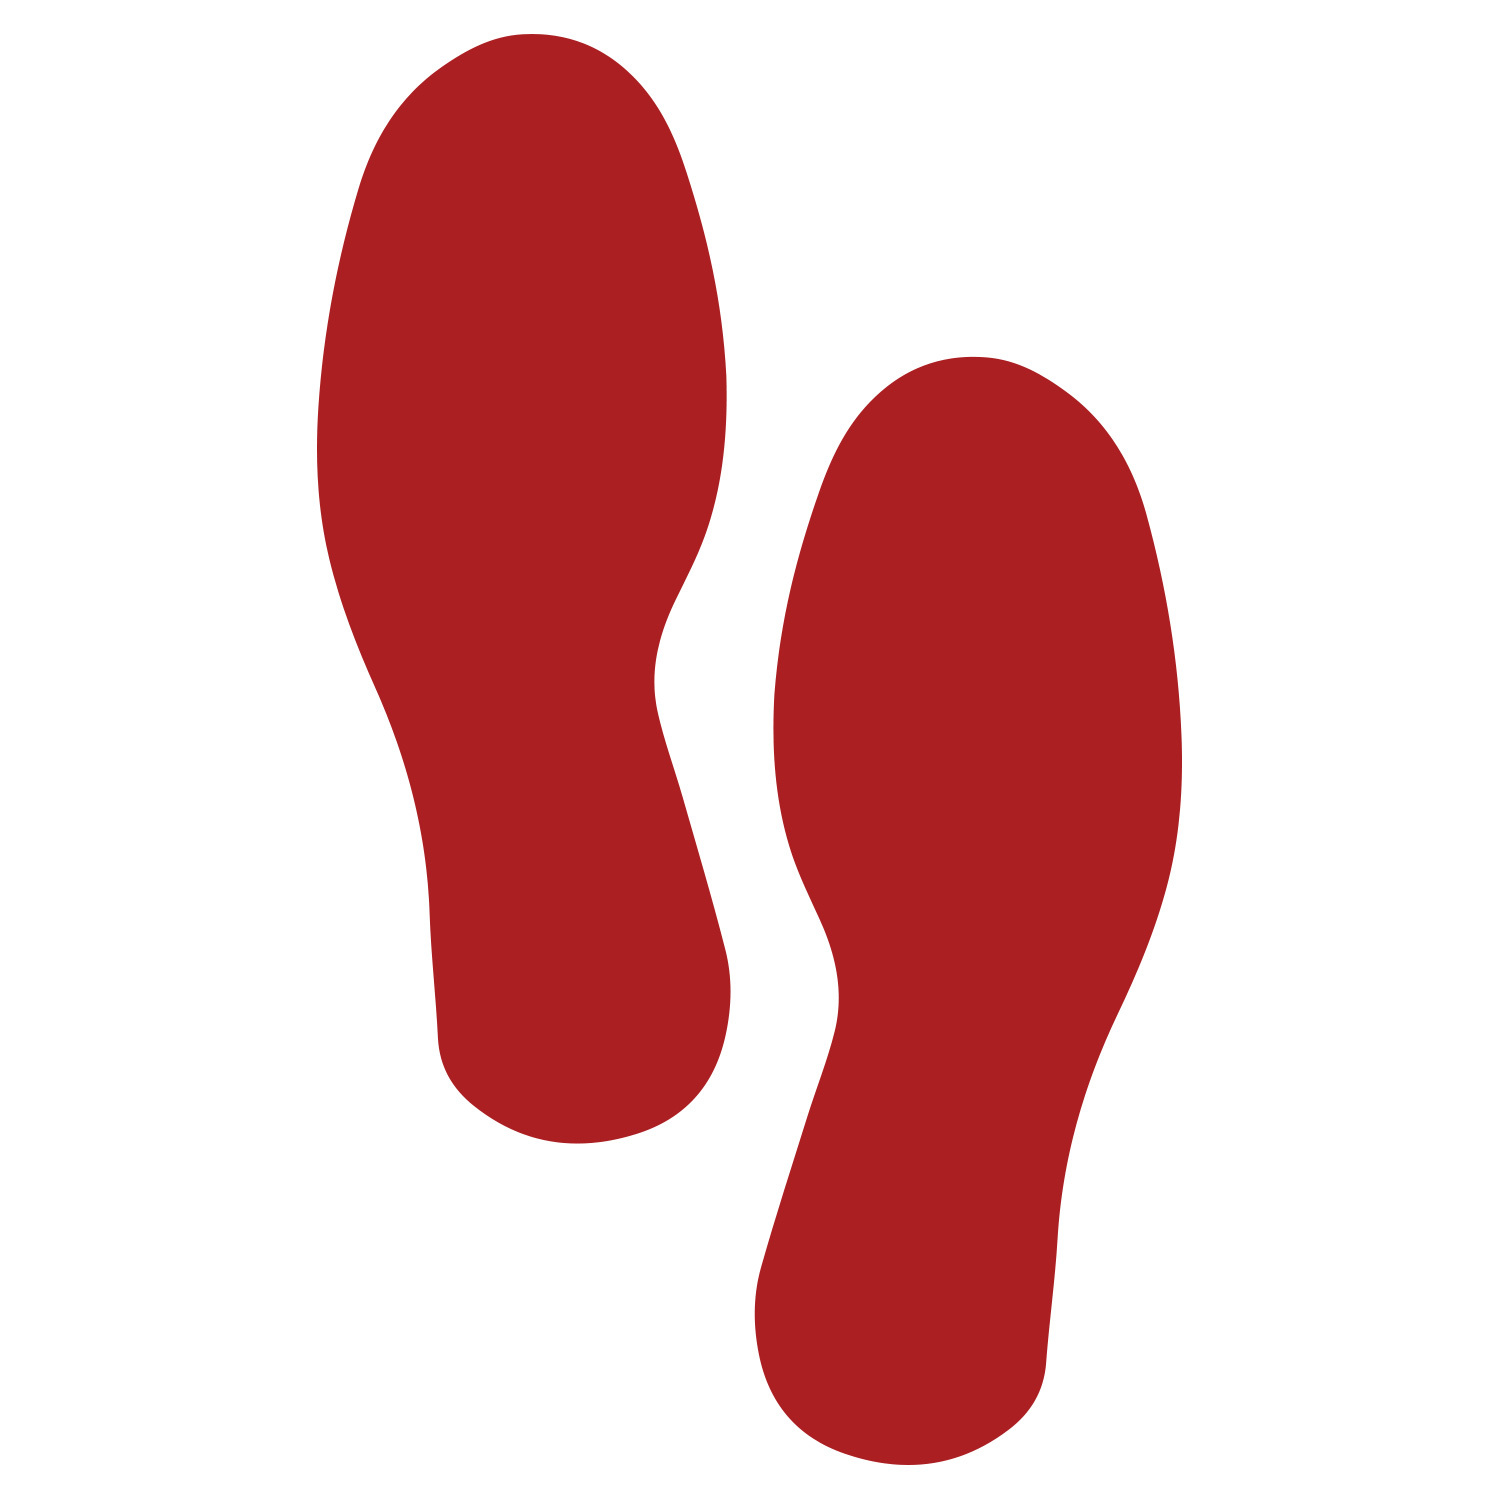 Primary image for LiteMark Medium Size Red Removable Footprint Decals - Pack of 12 (6 Pairs)